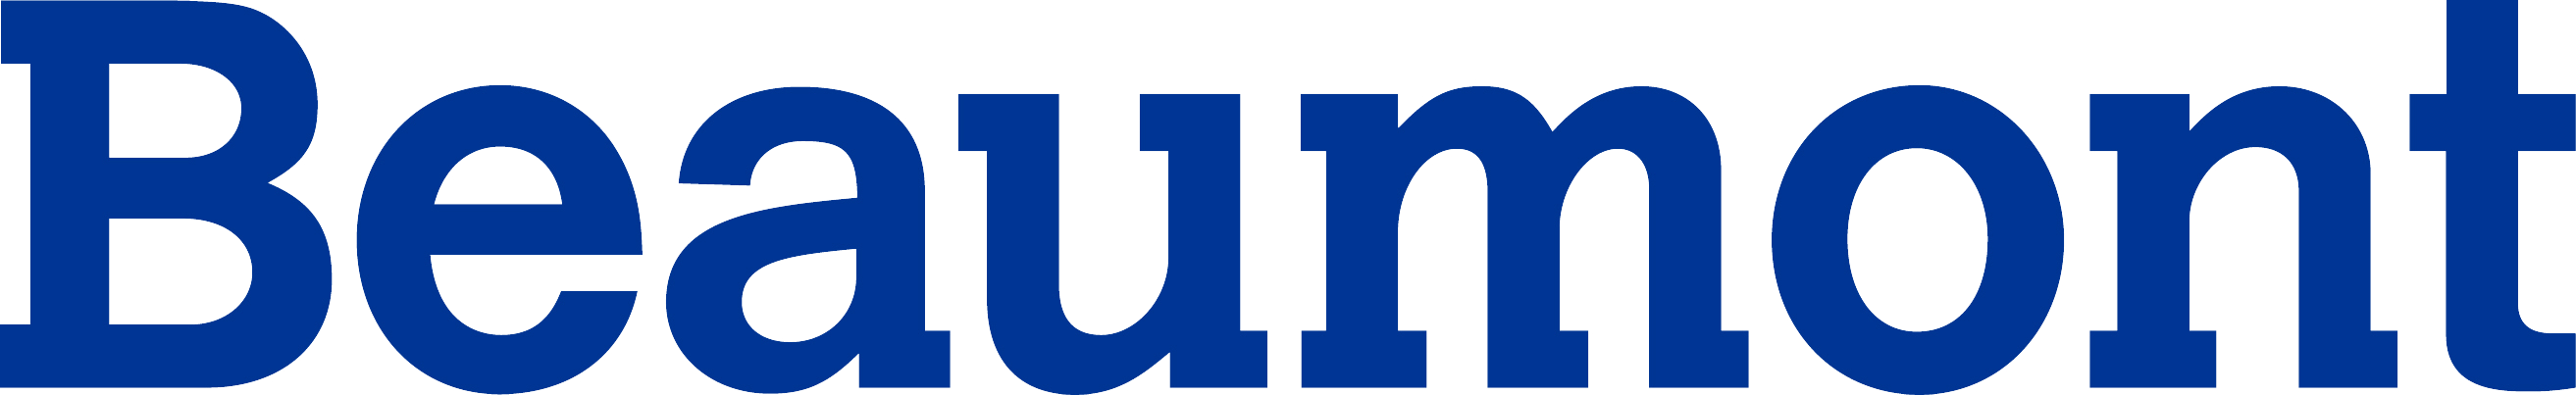 beaumont_logo.png